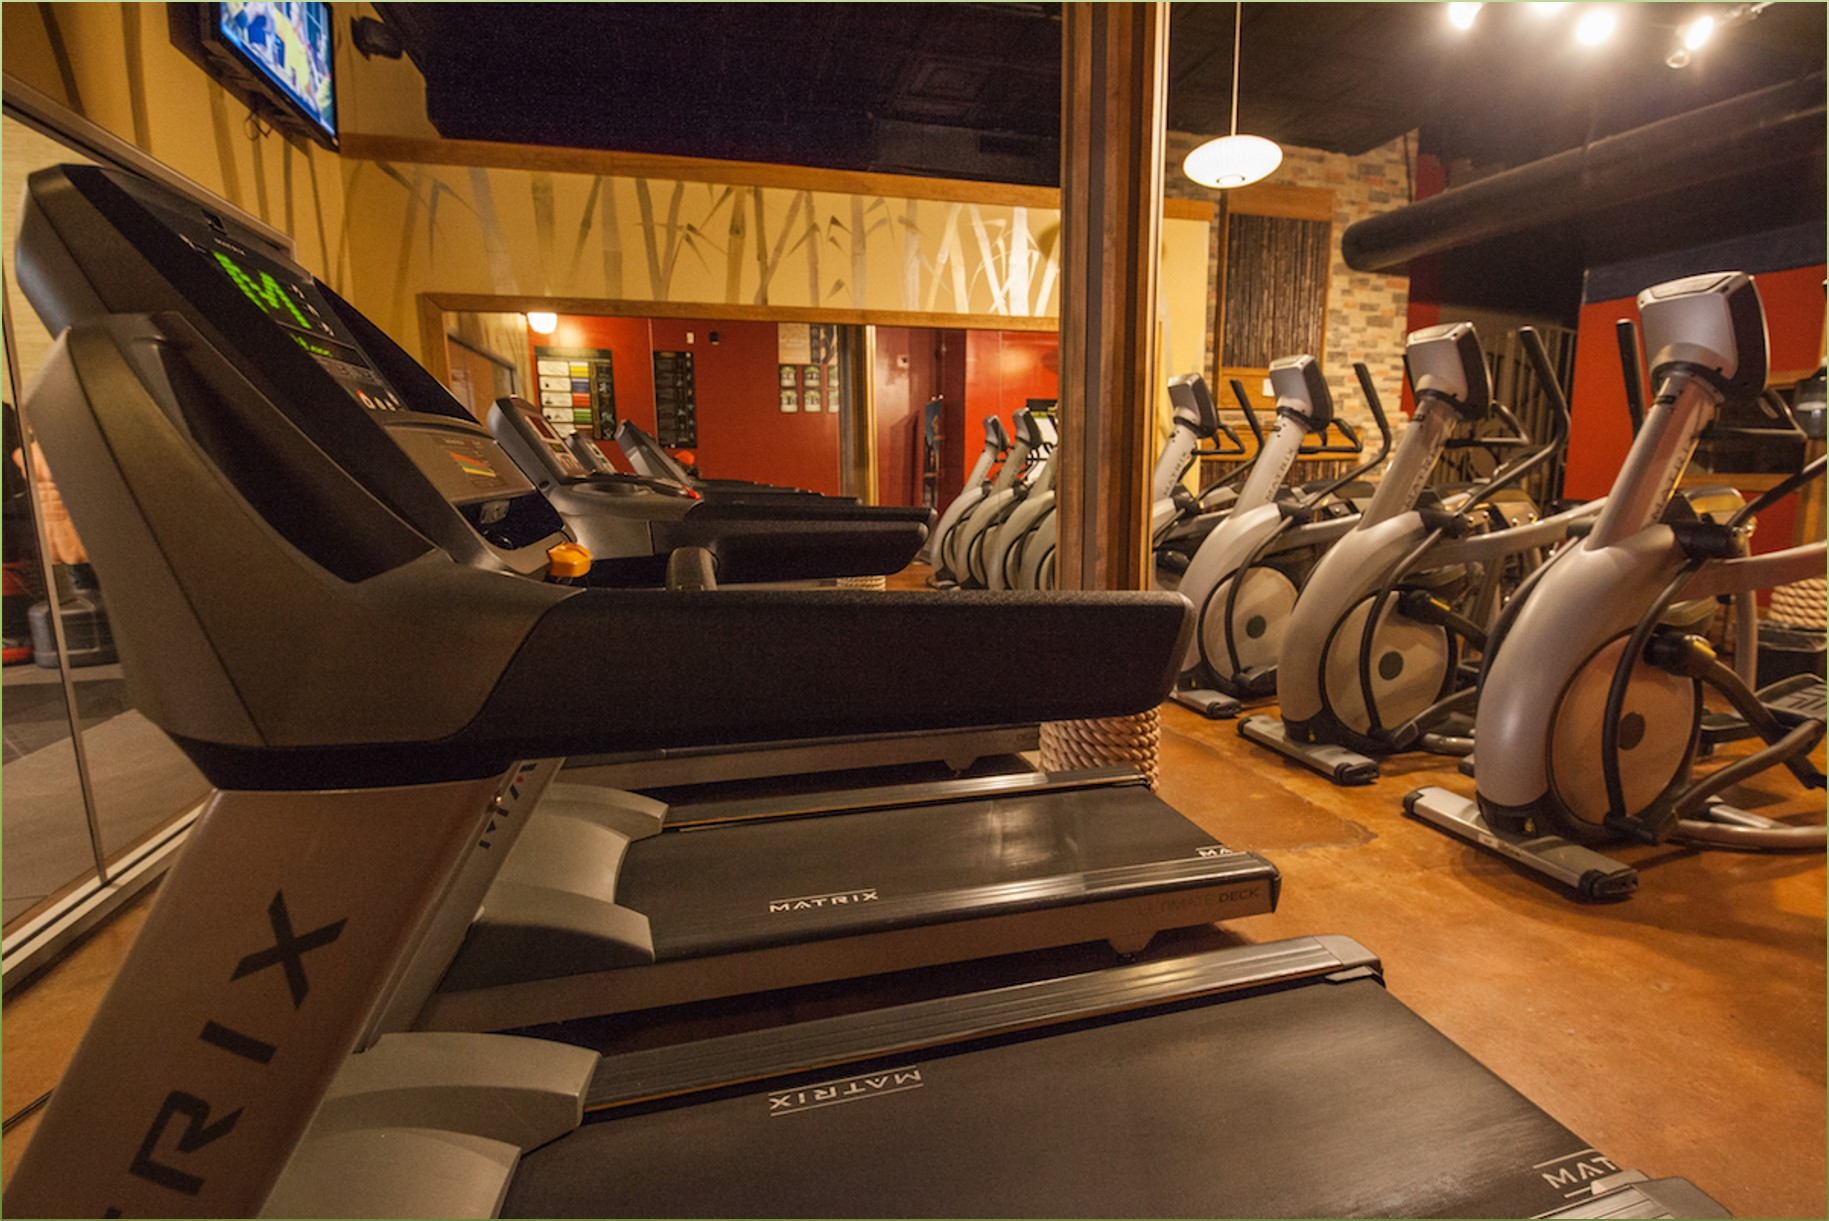 Gym with treadmills and exercise bikes